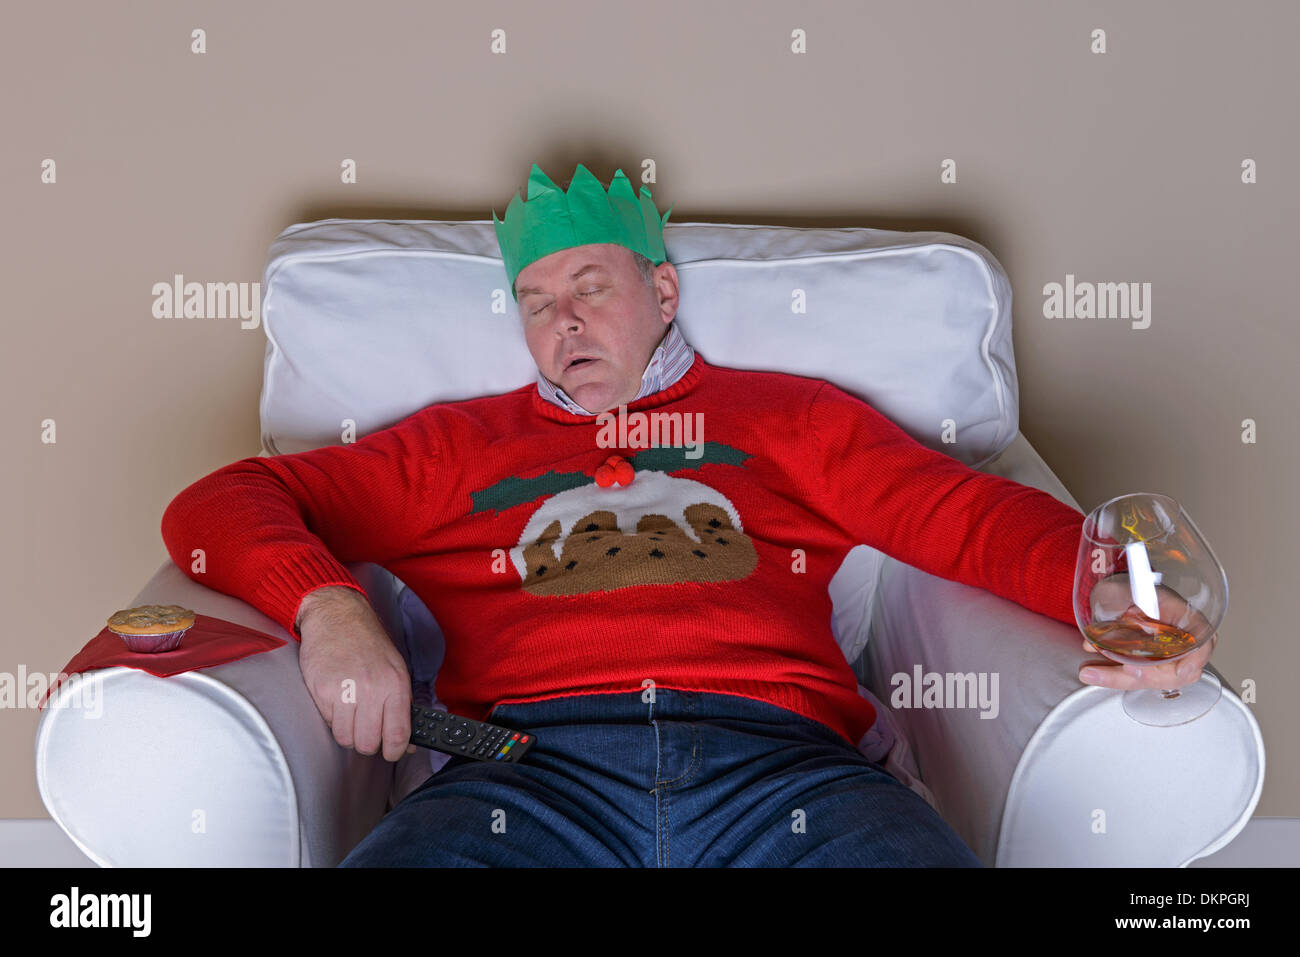 A Christmas tradition - Dad has fallen asleep in an armchair after dinner in front of the TV - Stock Image